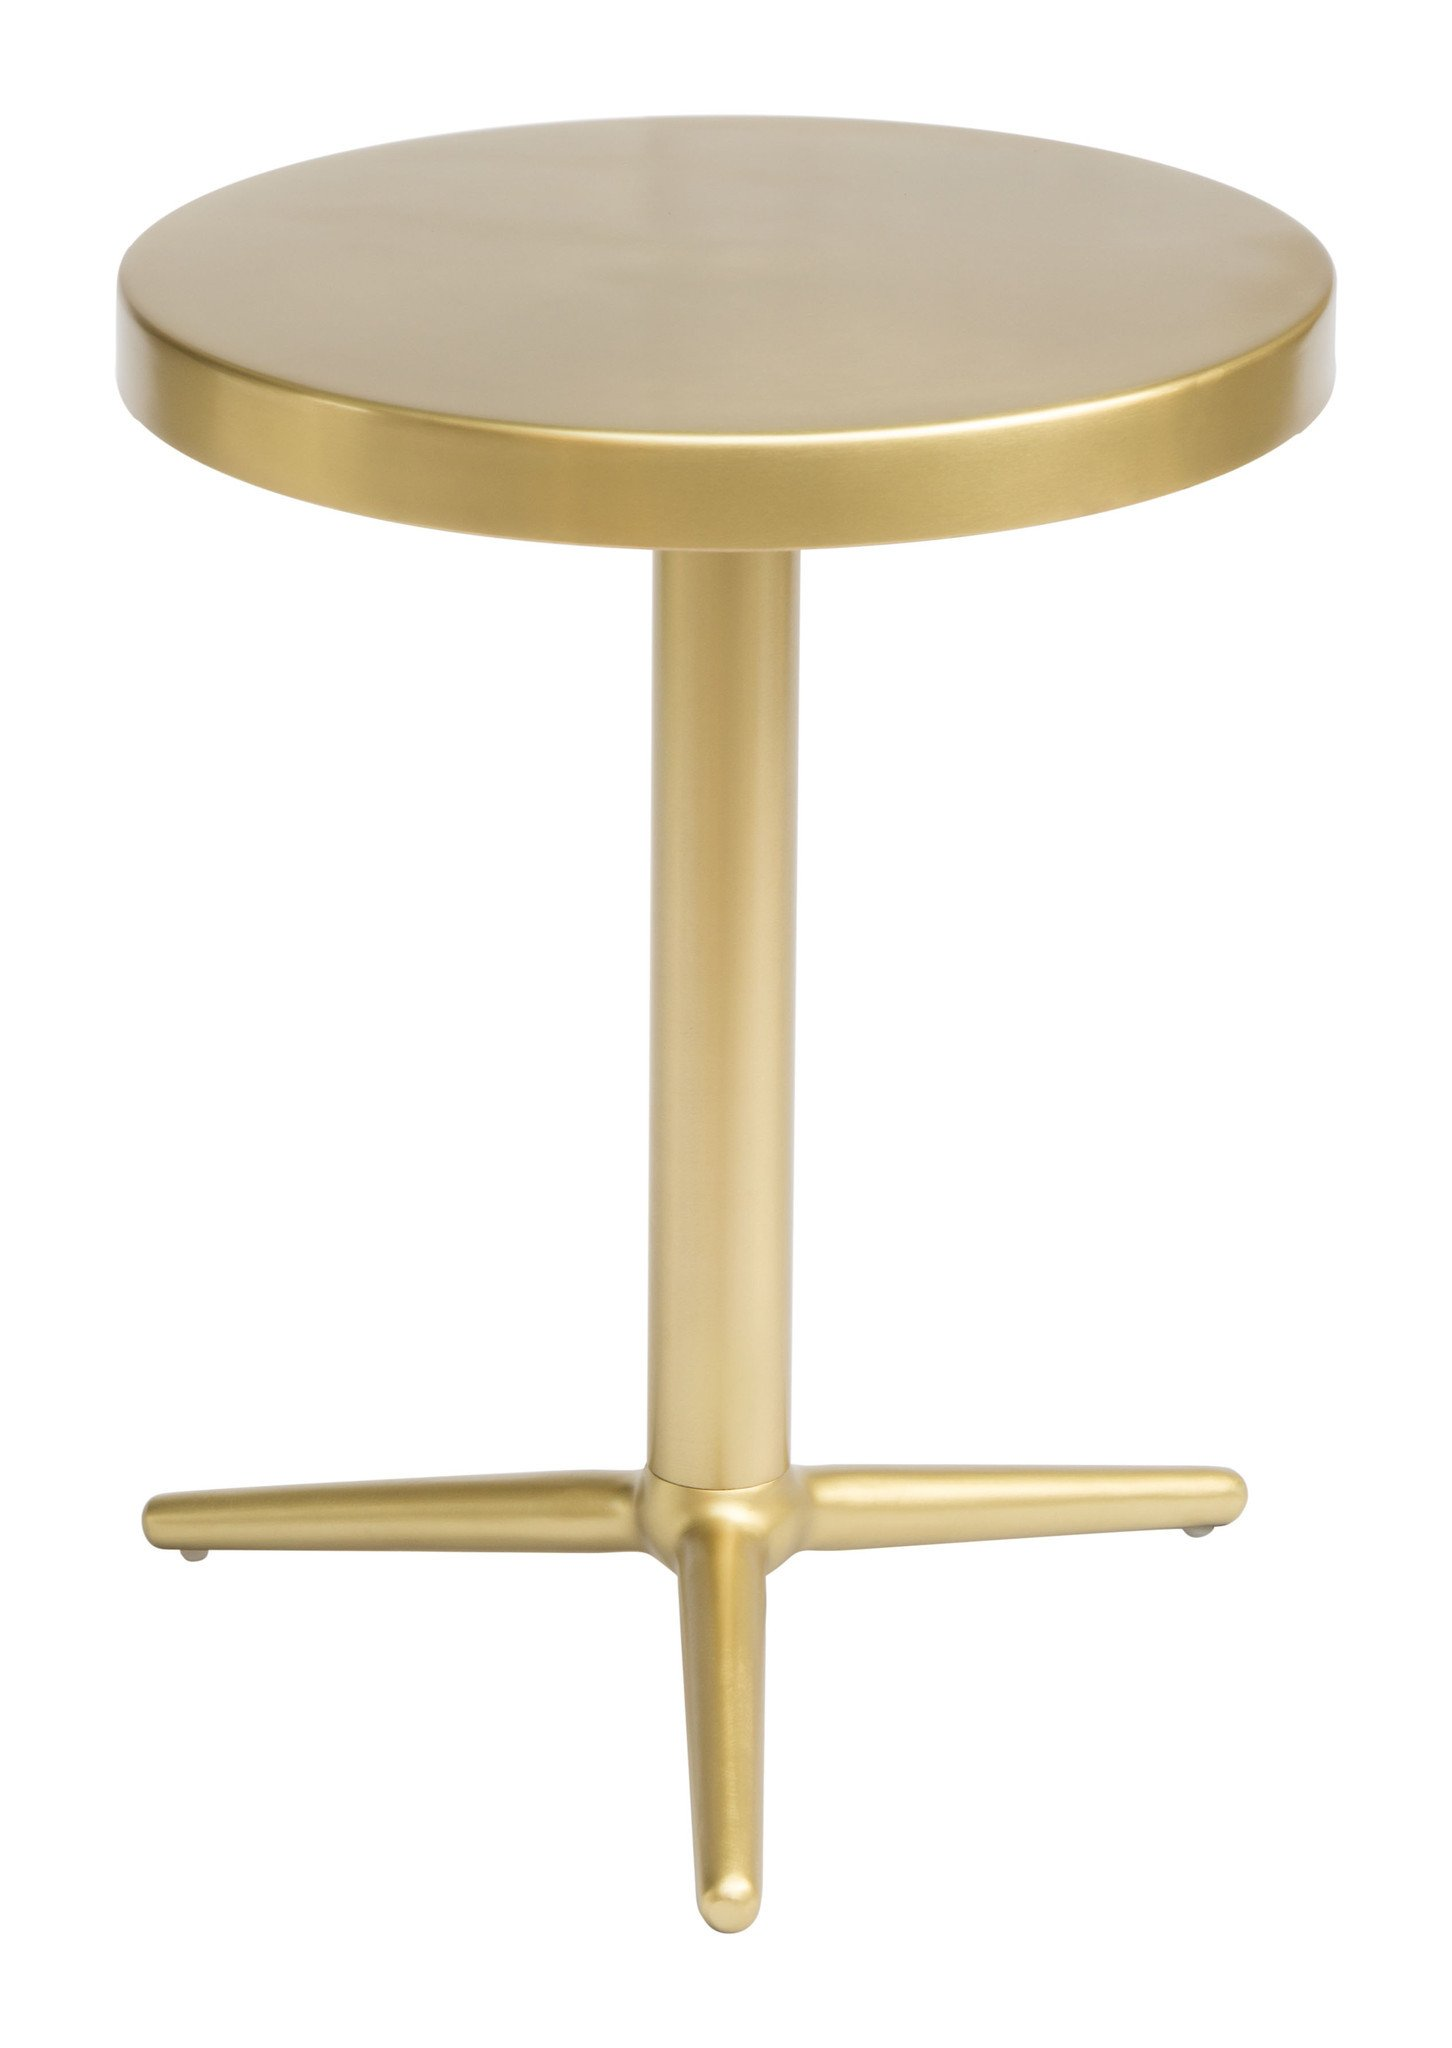 derby accent table with round top leg base brass side tables alan decor home and deco industrial look end fretwork coffee pier cushions west elm floor pillow wire dark wood square